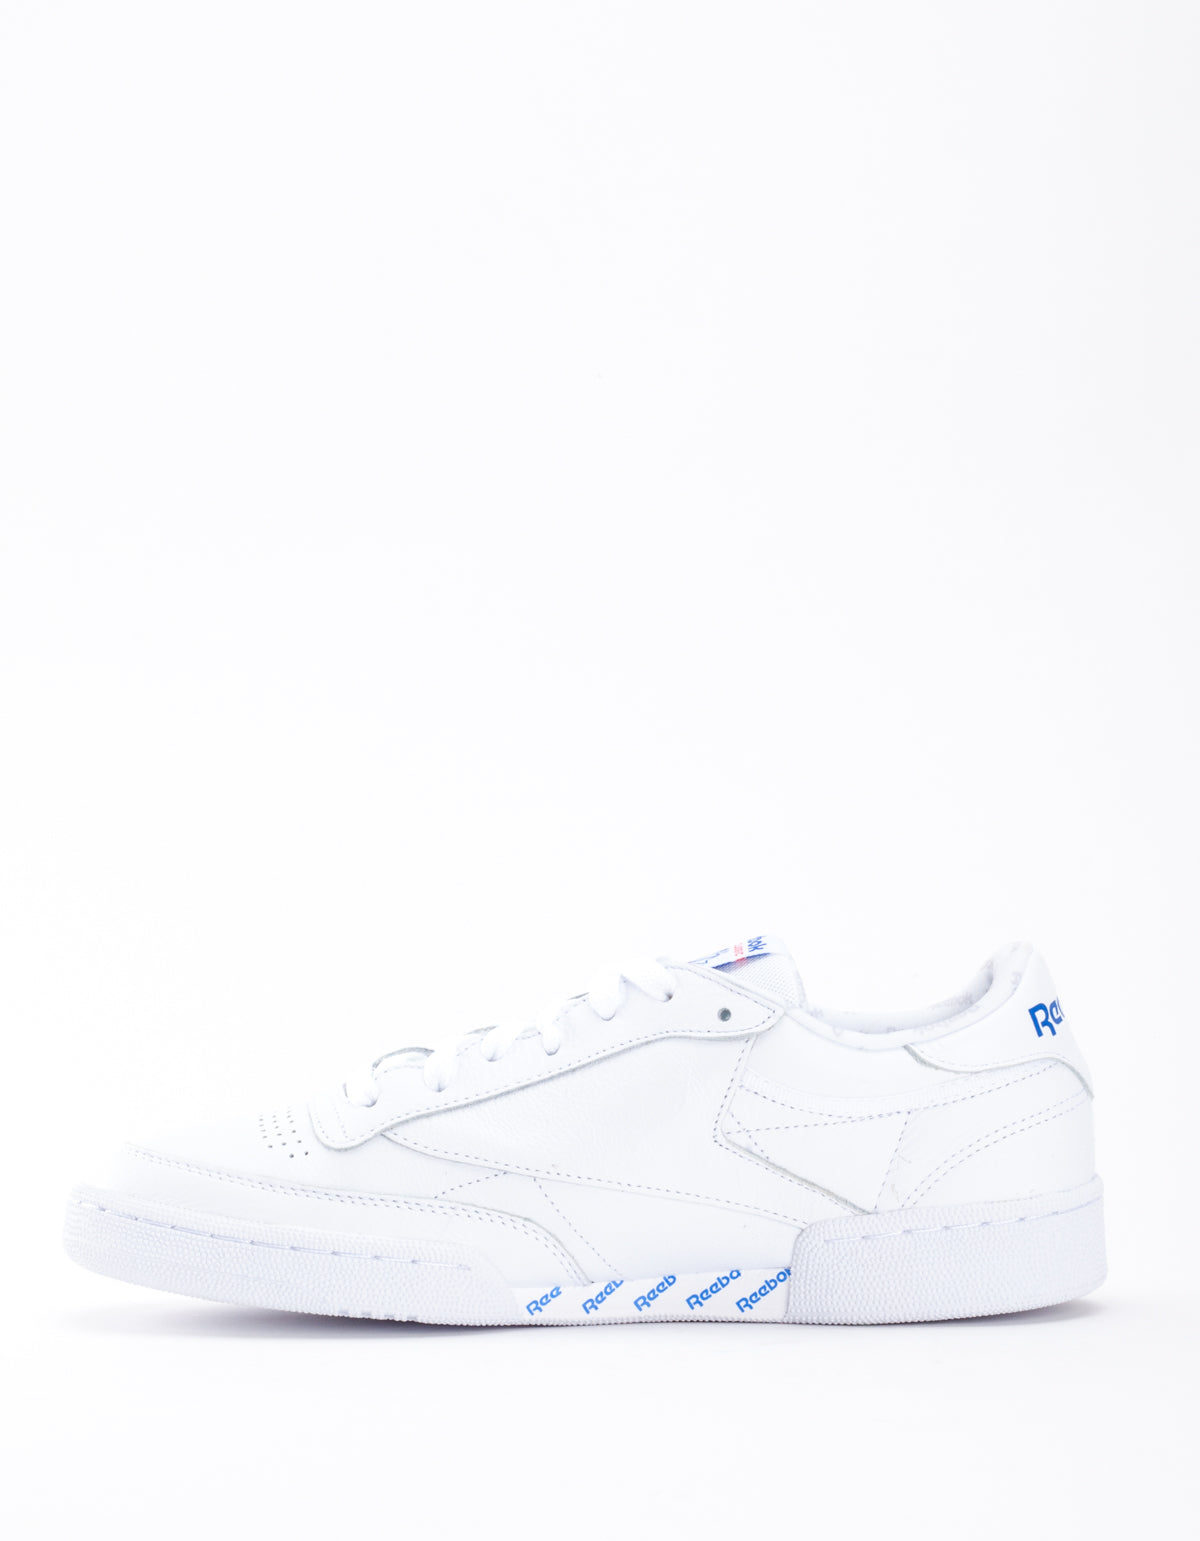 Reebok Club C 85 SO White Solid Grey Vital Blue Red Black